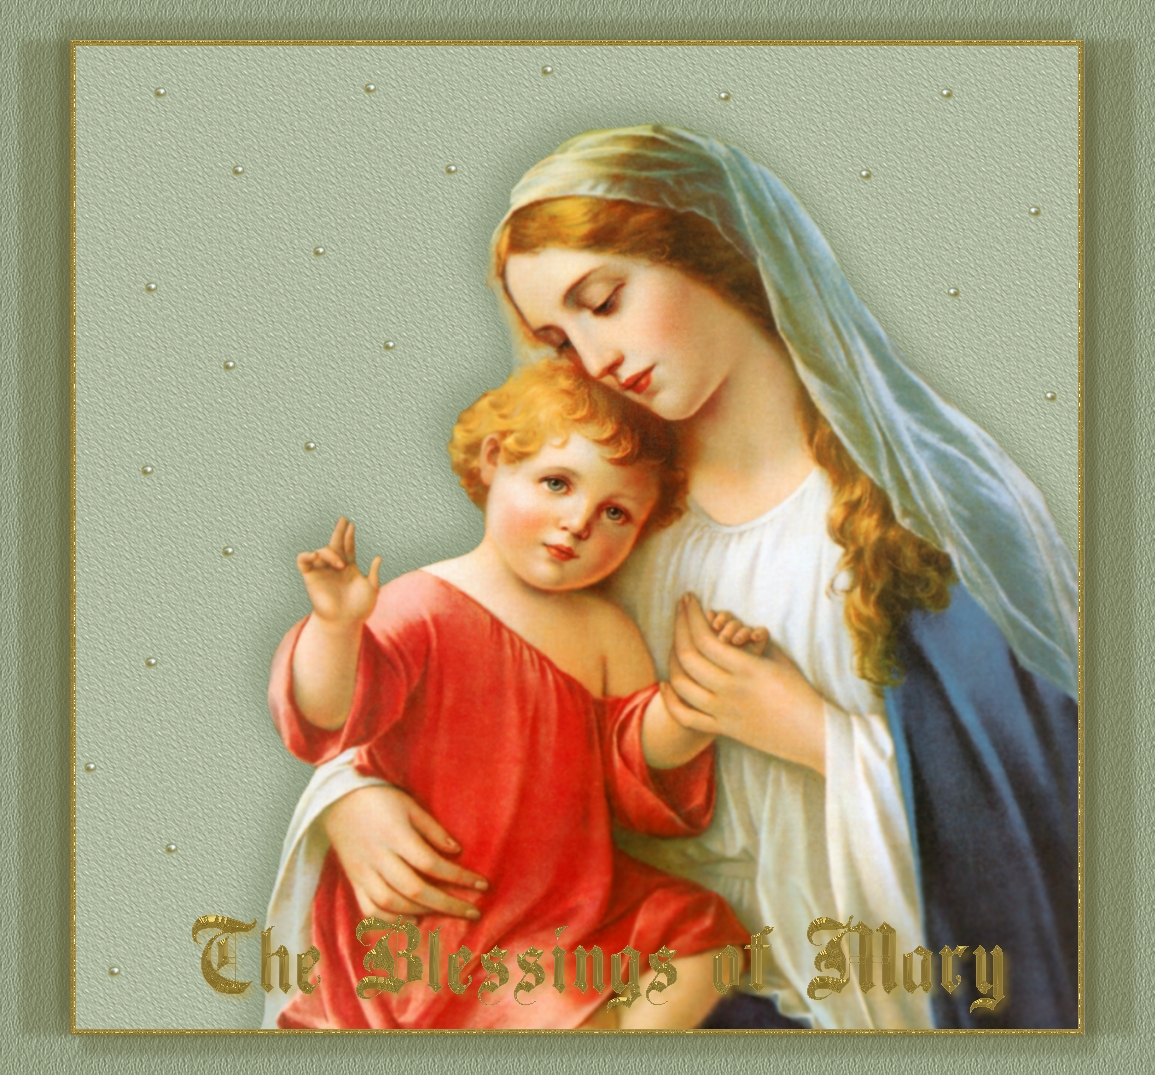 What offer prayers to the Virgin Mary about children